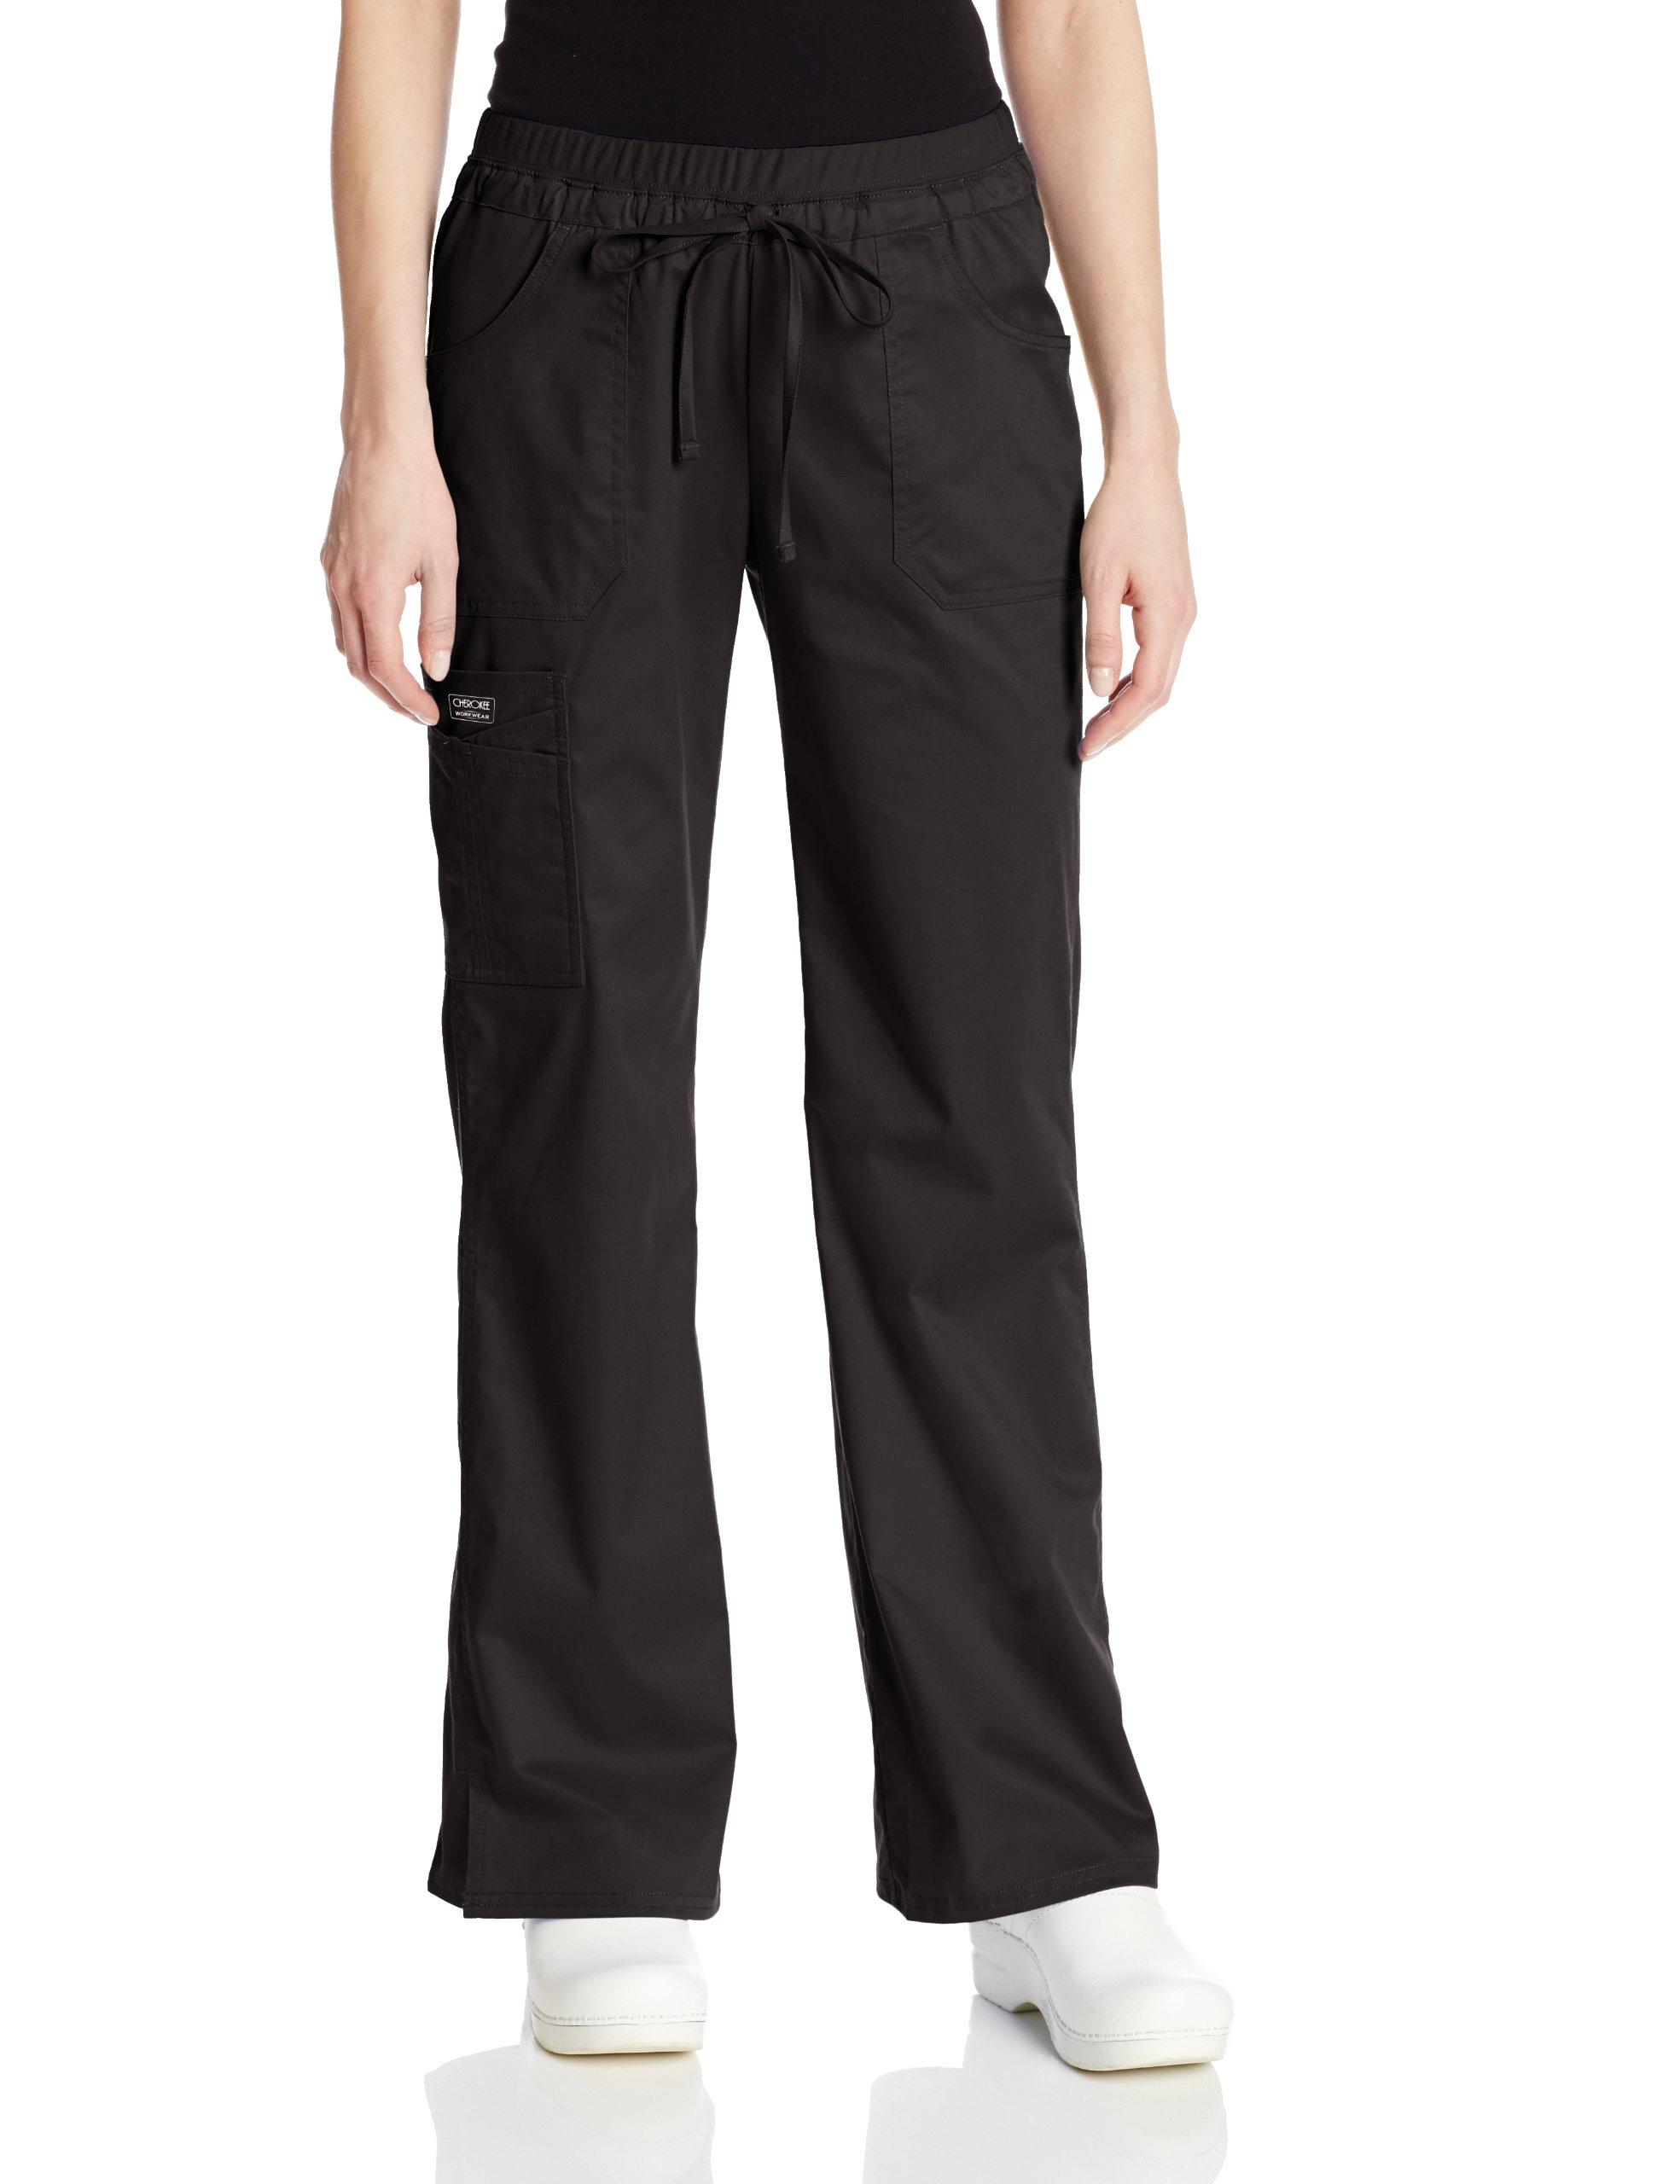 Cherokee Women's Workwear Scrubs Core Stretch Jr. Fit Low-Rise Cargo Pant, Black, Small